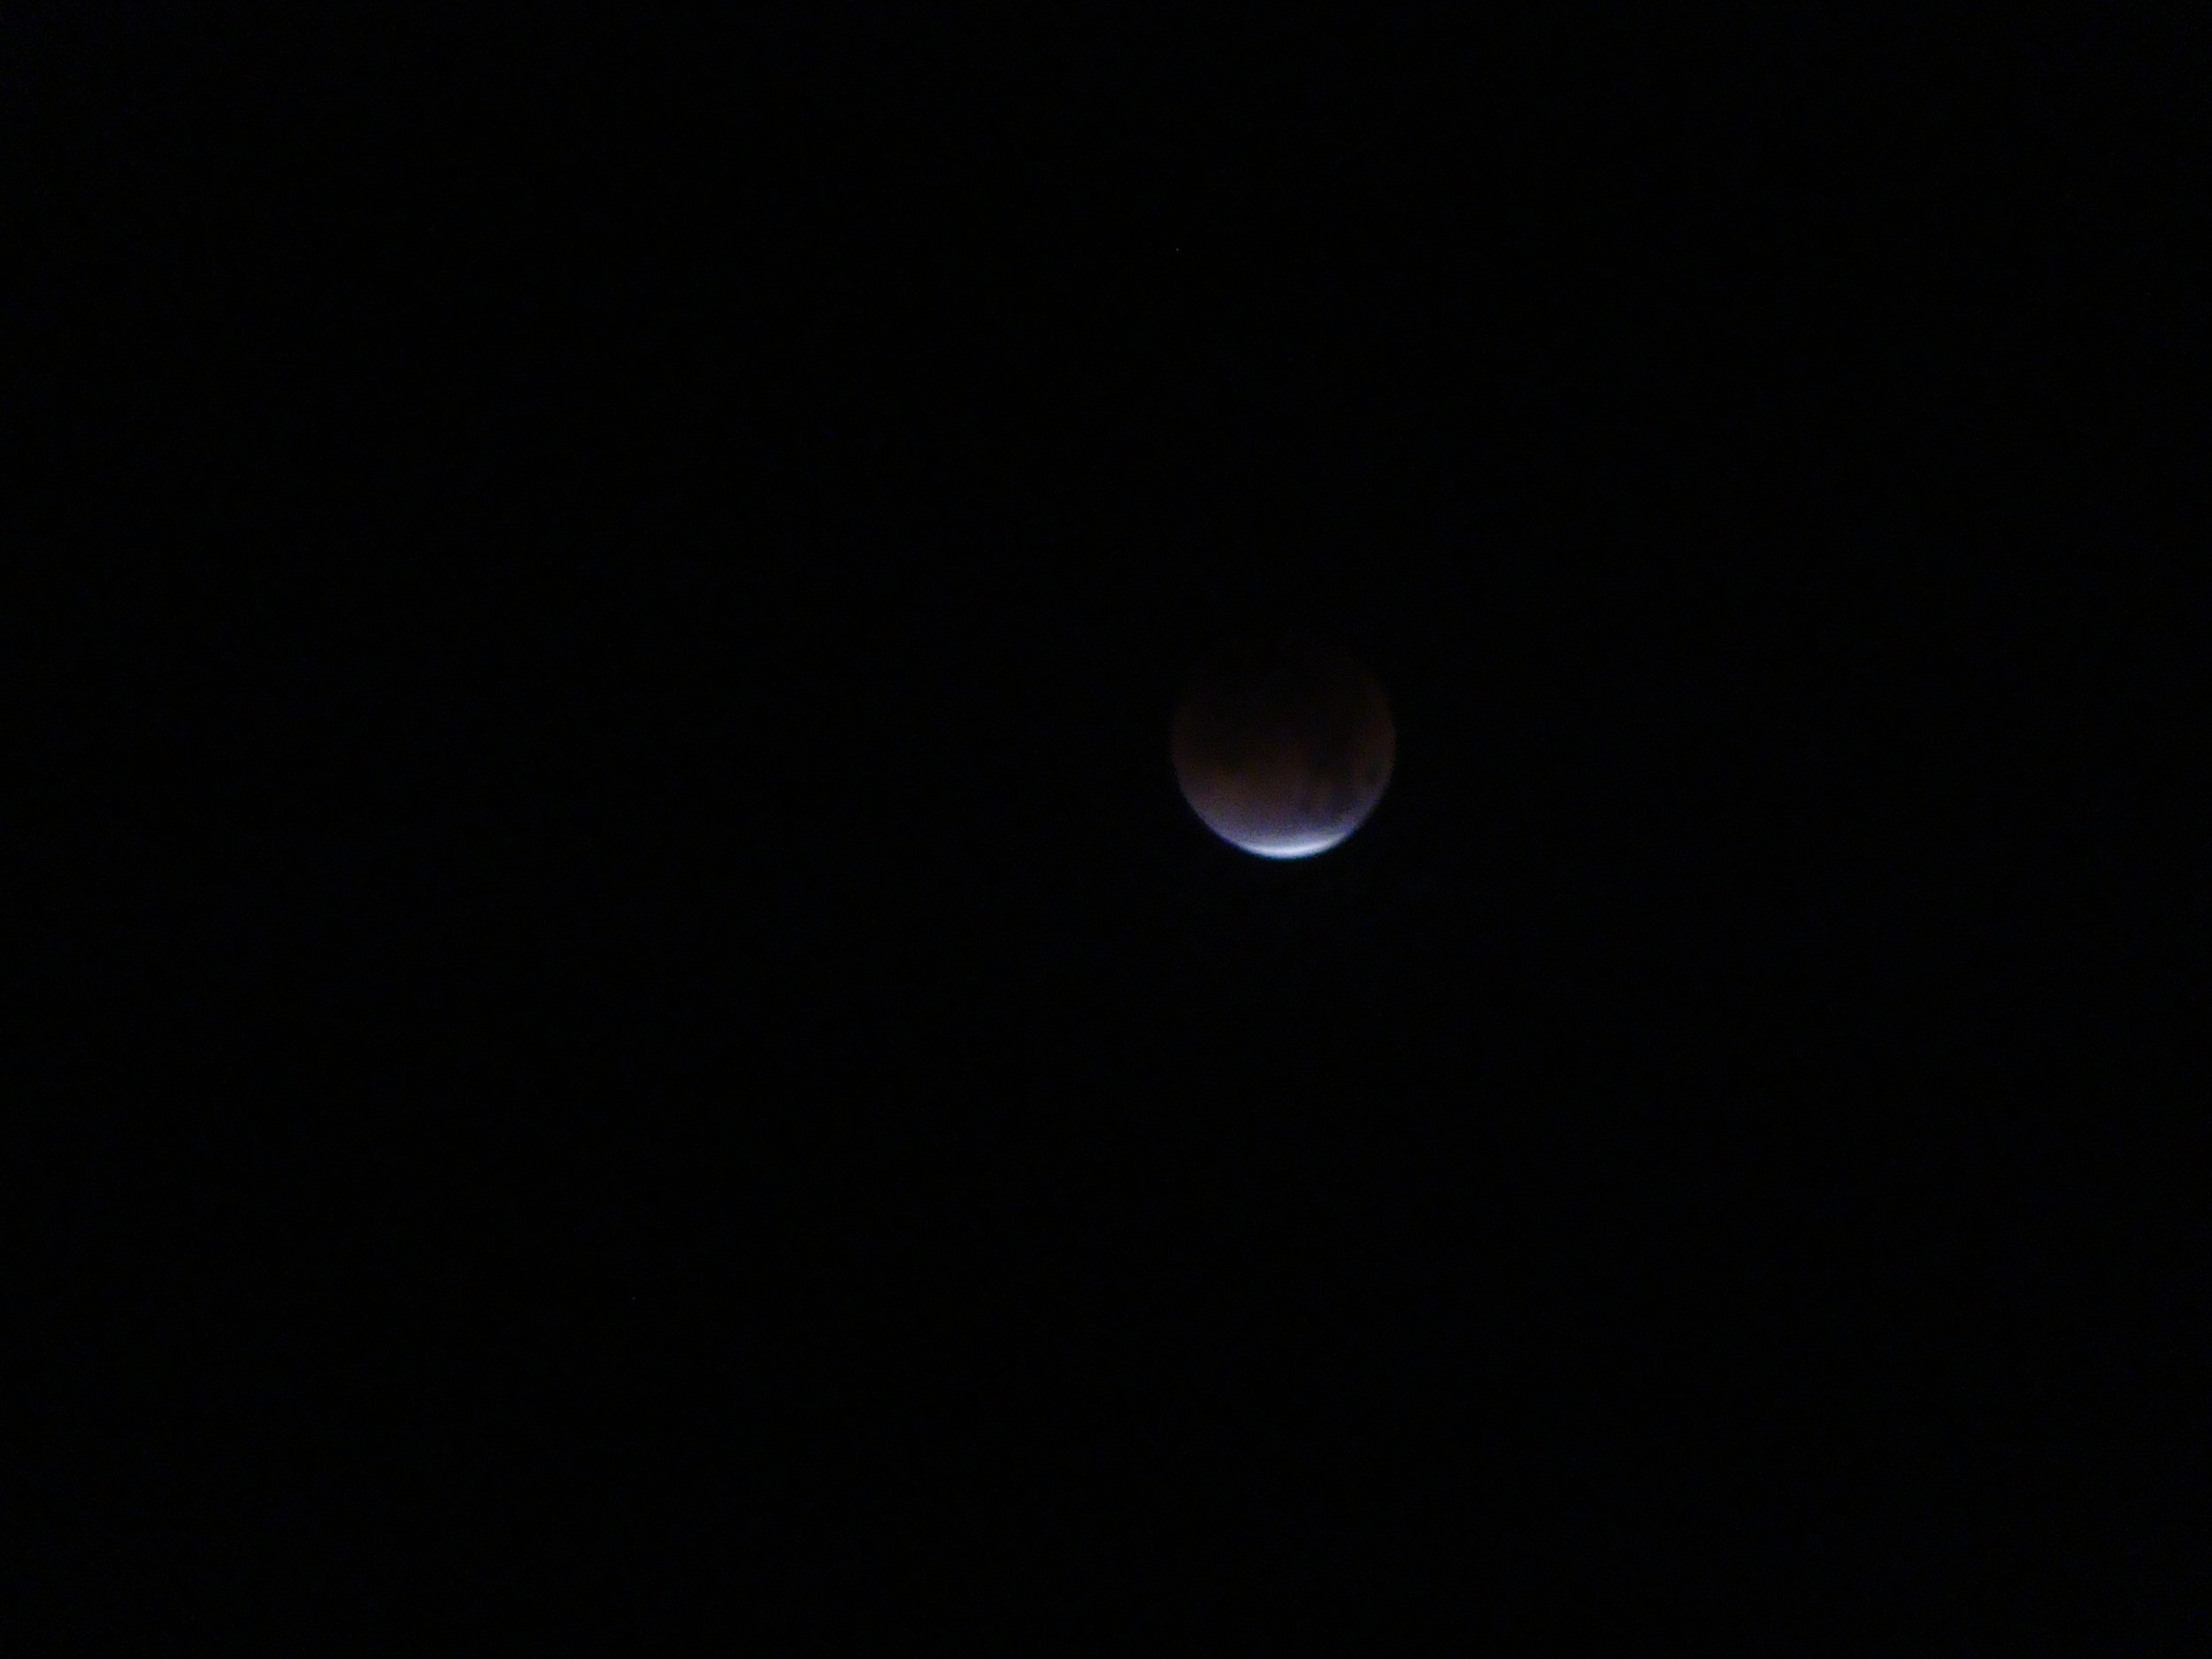 Eclipsed Moon - January 31, 2018